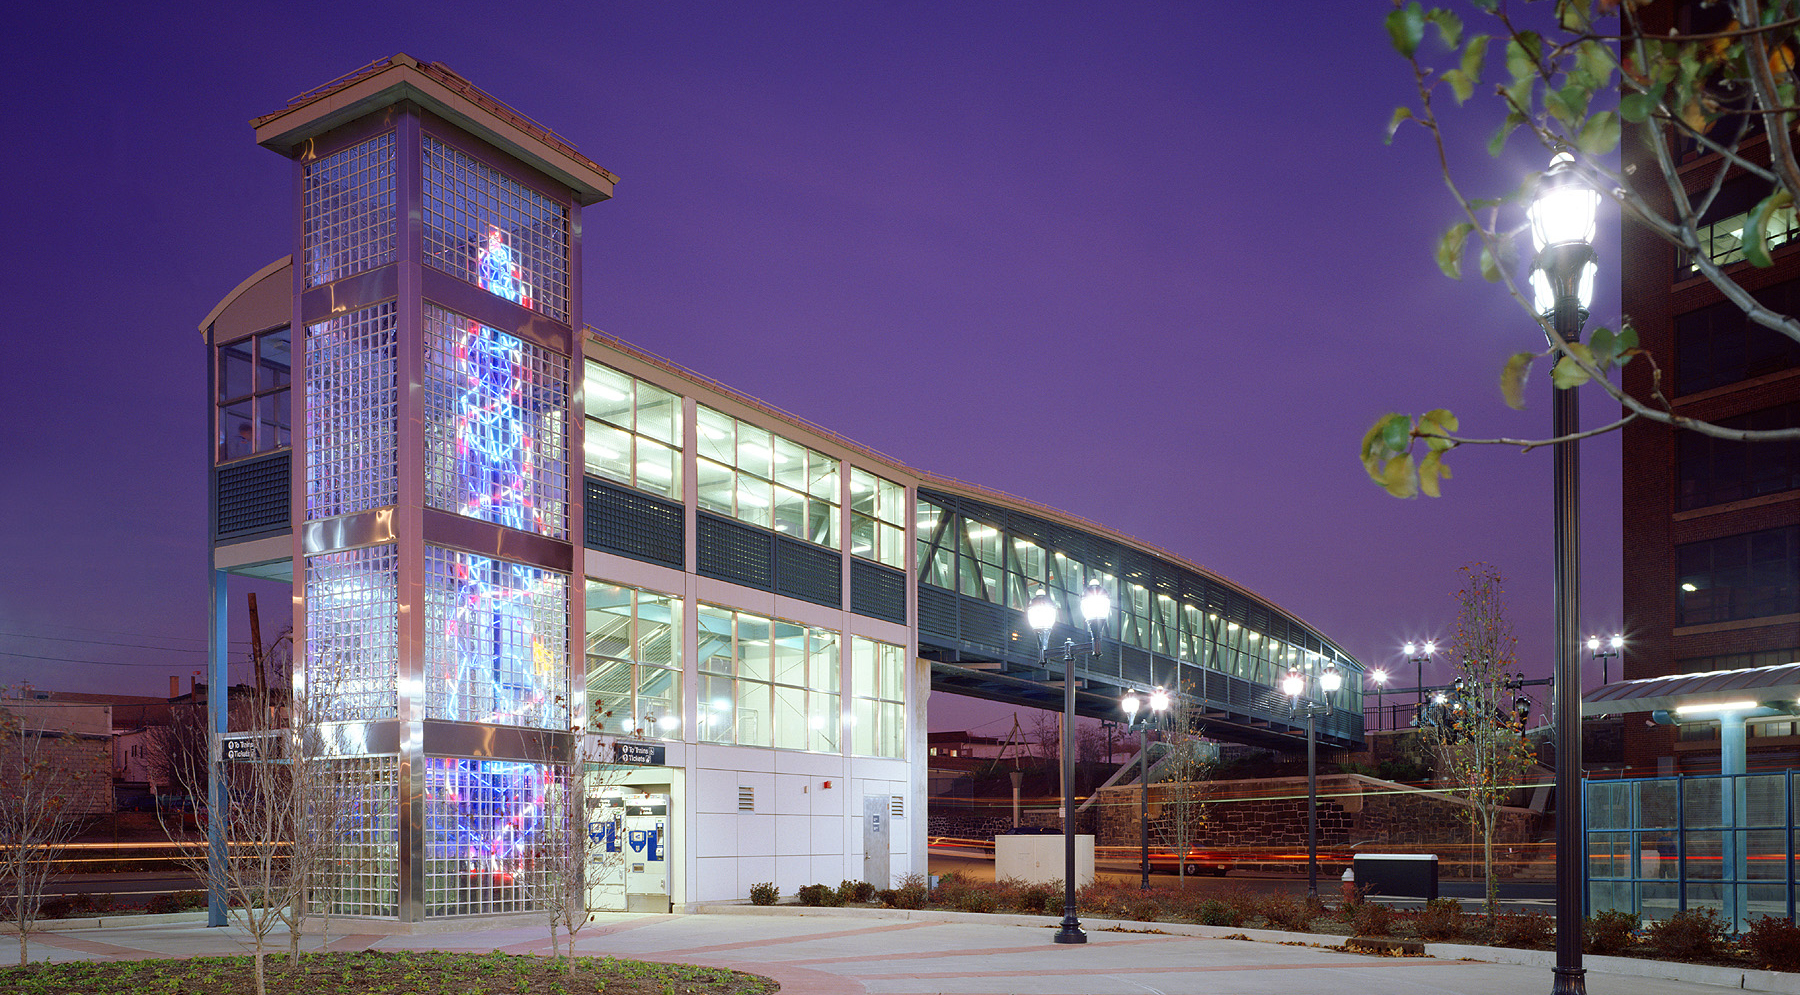 NJ Transit | Design-Build-Operate-Maintain, Hudson-Bergen Light Rail Station, Architectural Design of 21 Stations